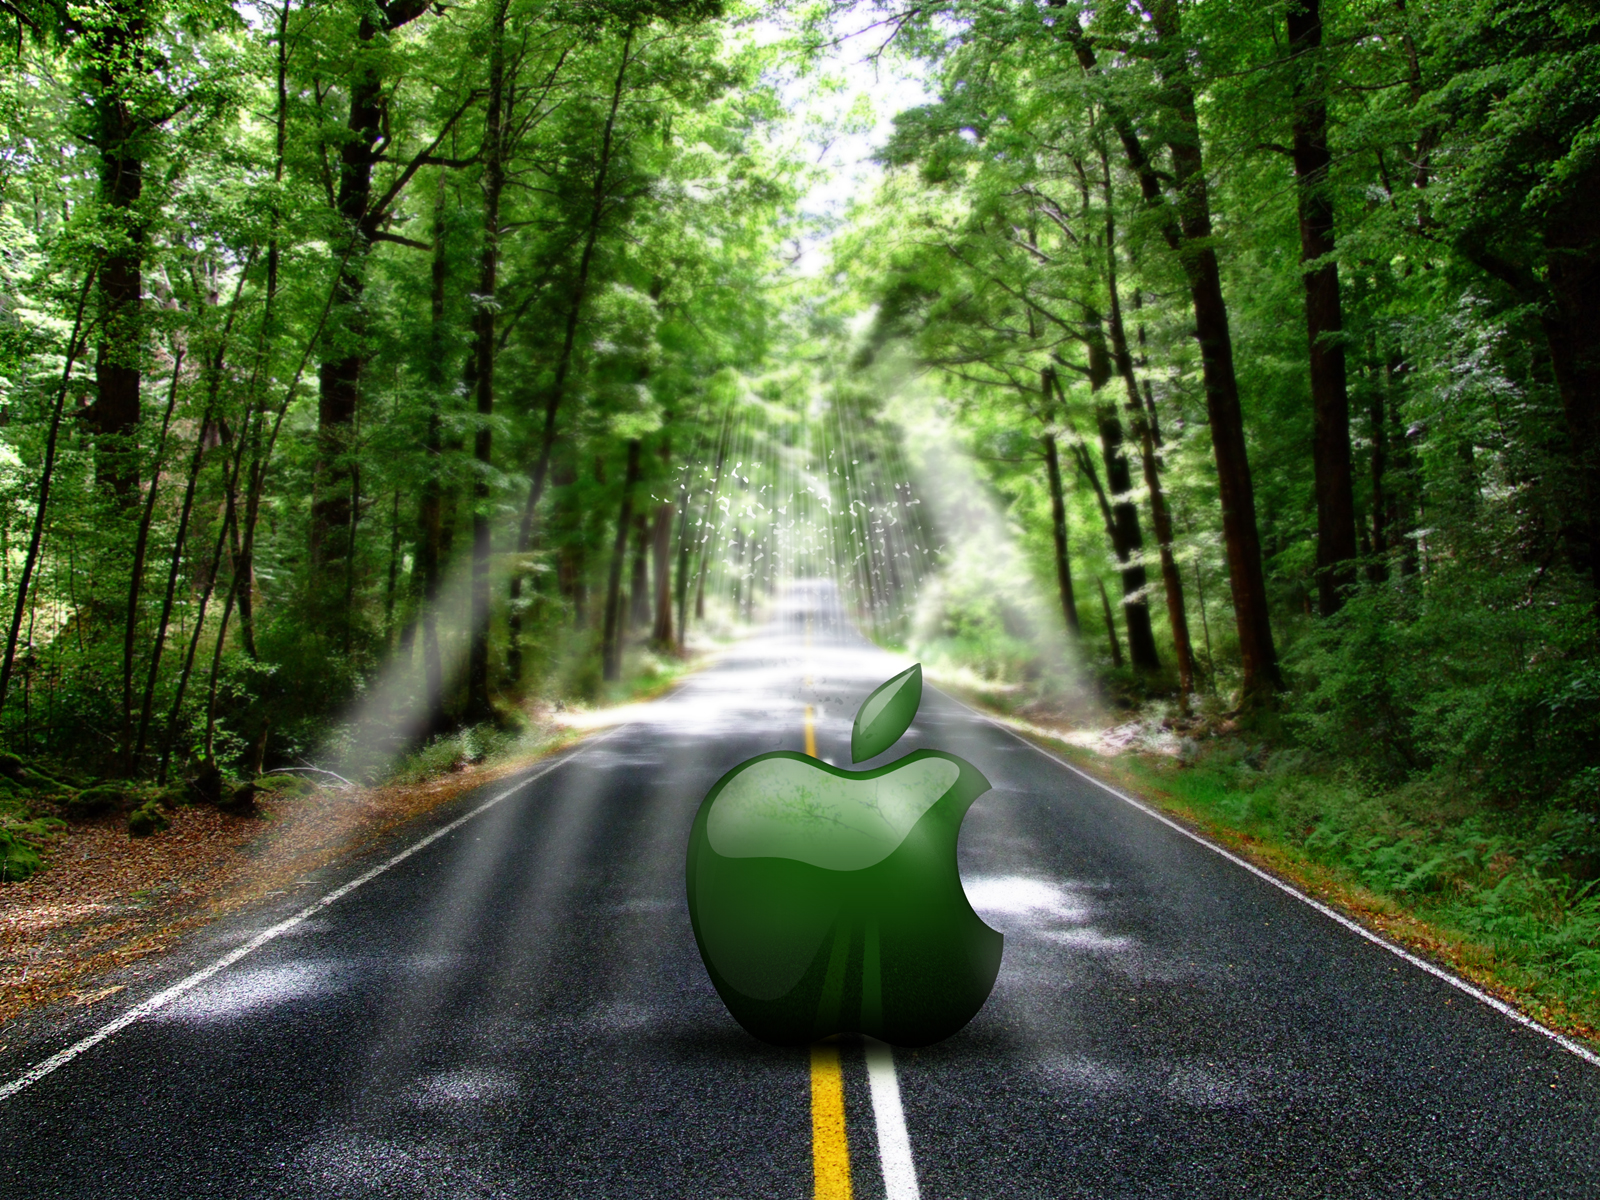 Awesome Apple Backgrounds Think different Put a cool Apple